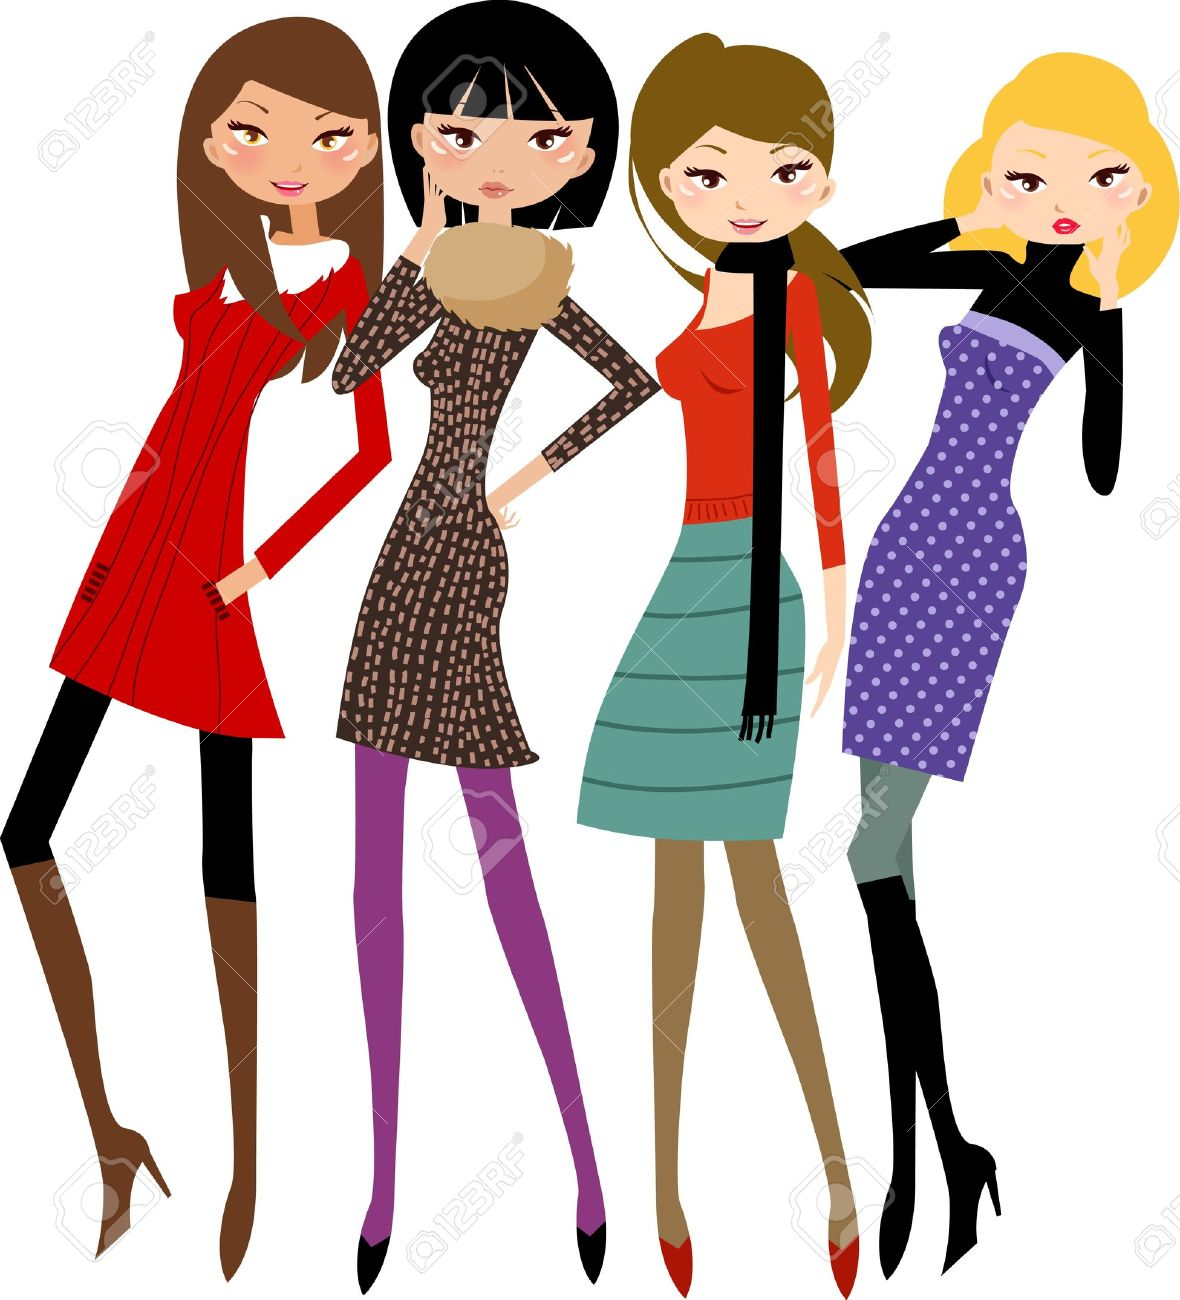 Group Girls Clipart Group of Friends Pretty Girl